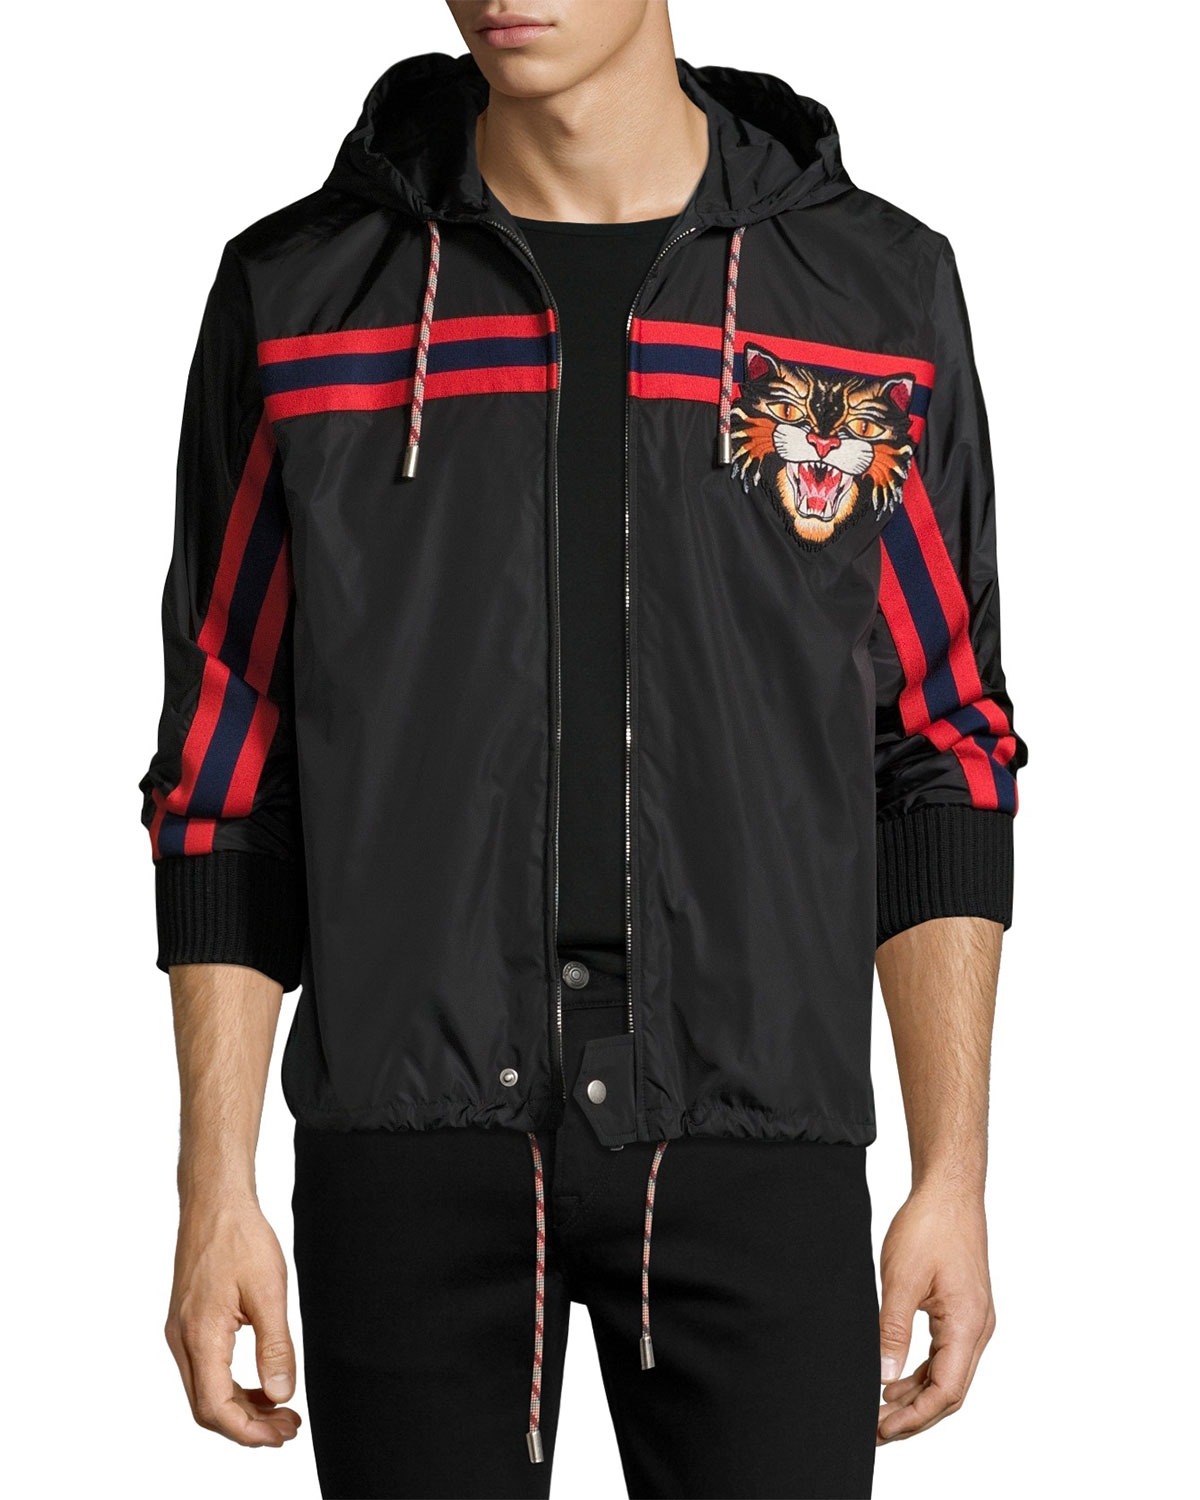 7c7ac373bc1 Gucci Nylon Jacket with Angry Cat Applique